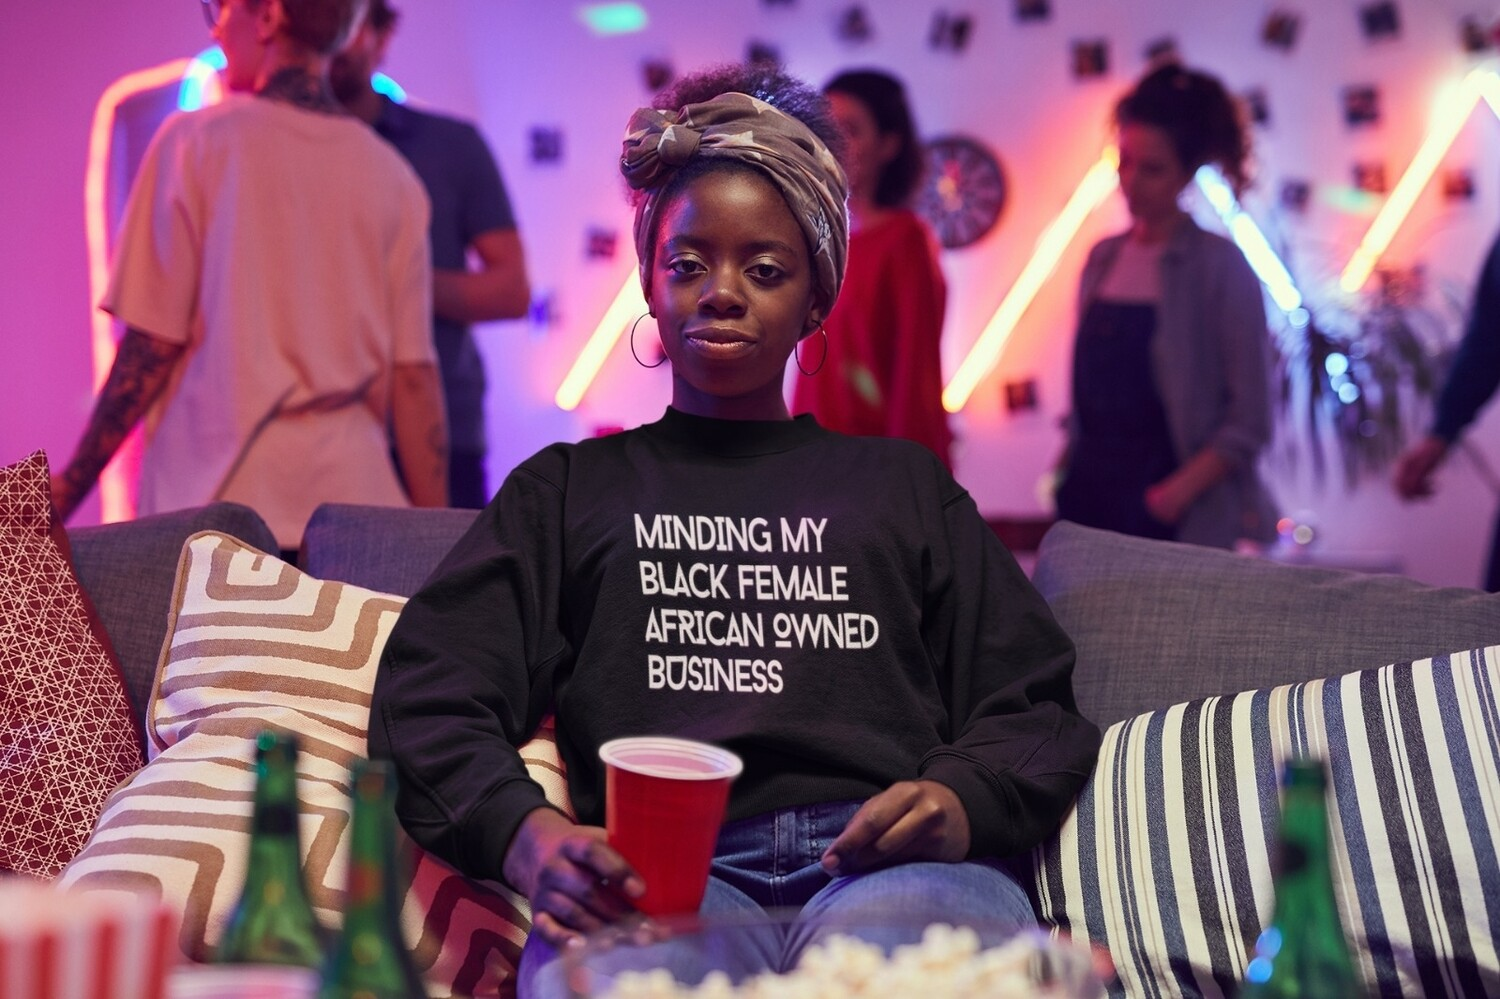 The 'Minding My Black Female African/Caribbean/ British Owned Business' Sweatshirt